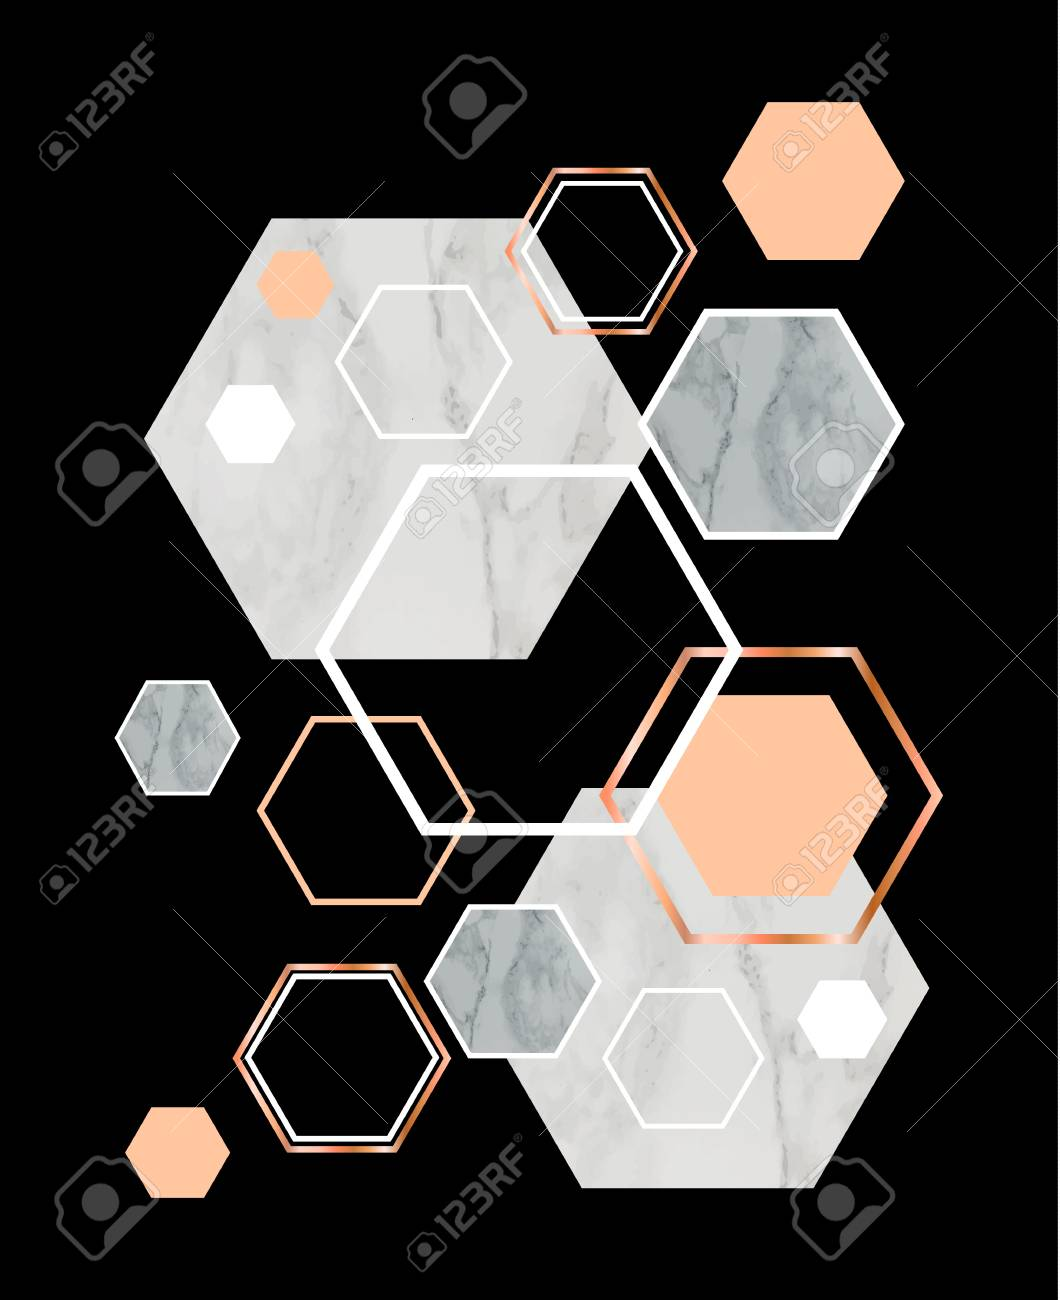 Black Background With Marble Rose Gold Hexagons Geometric Print Royalty Free Cliparts Vectors And Stock Illustration Image 95339500